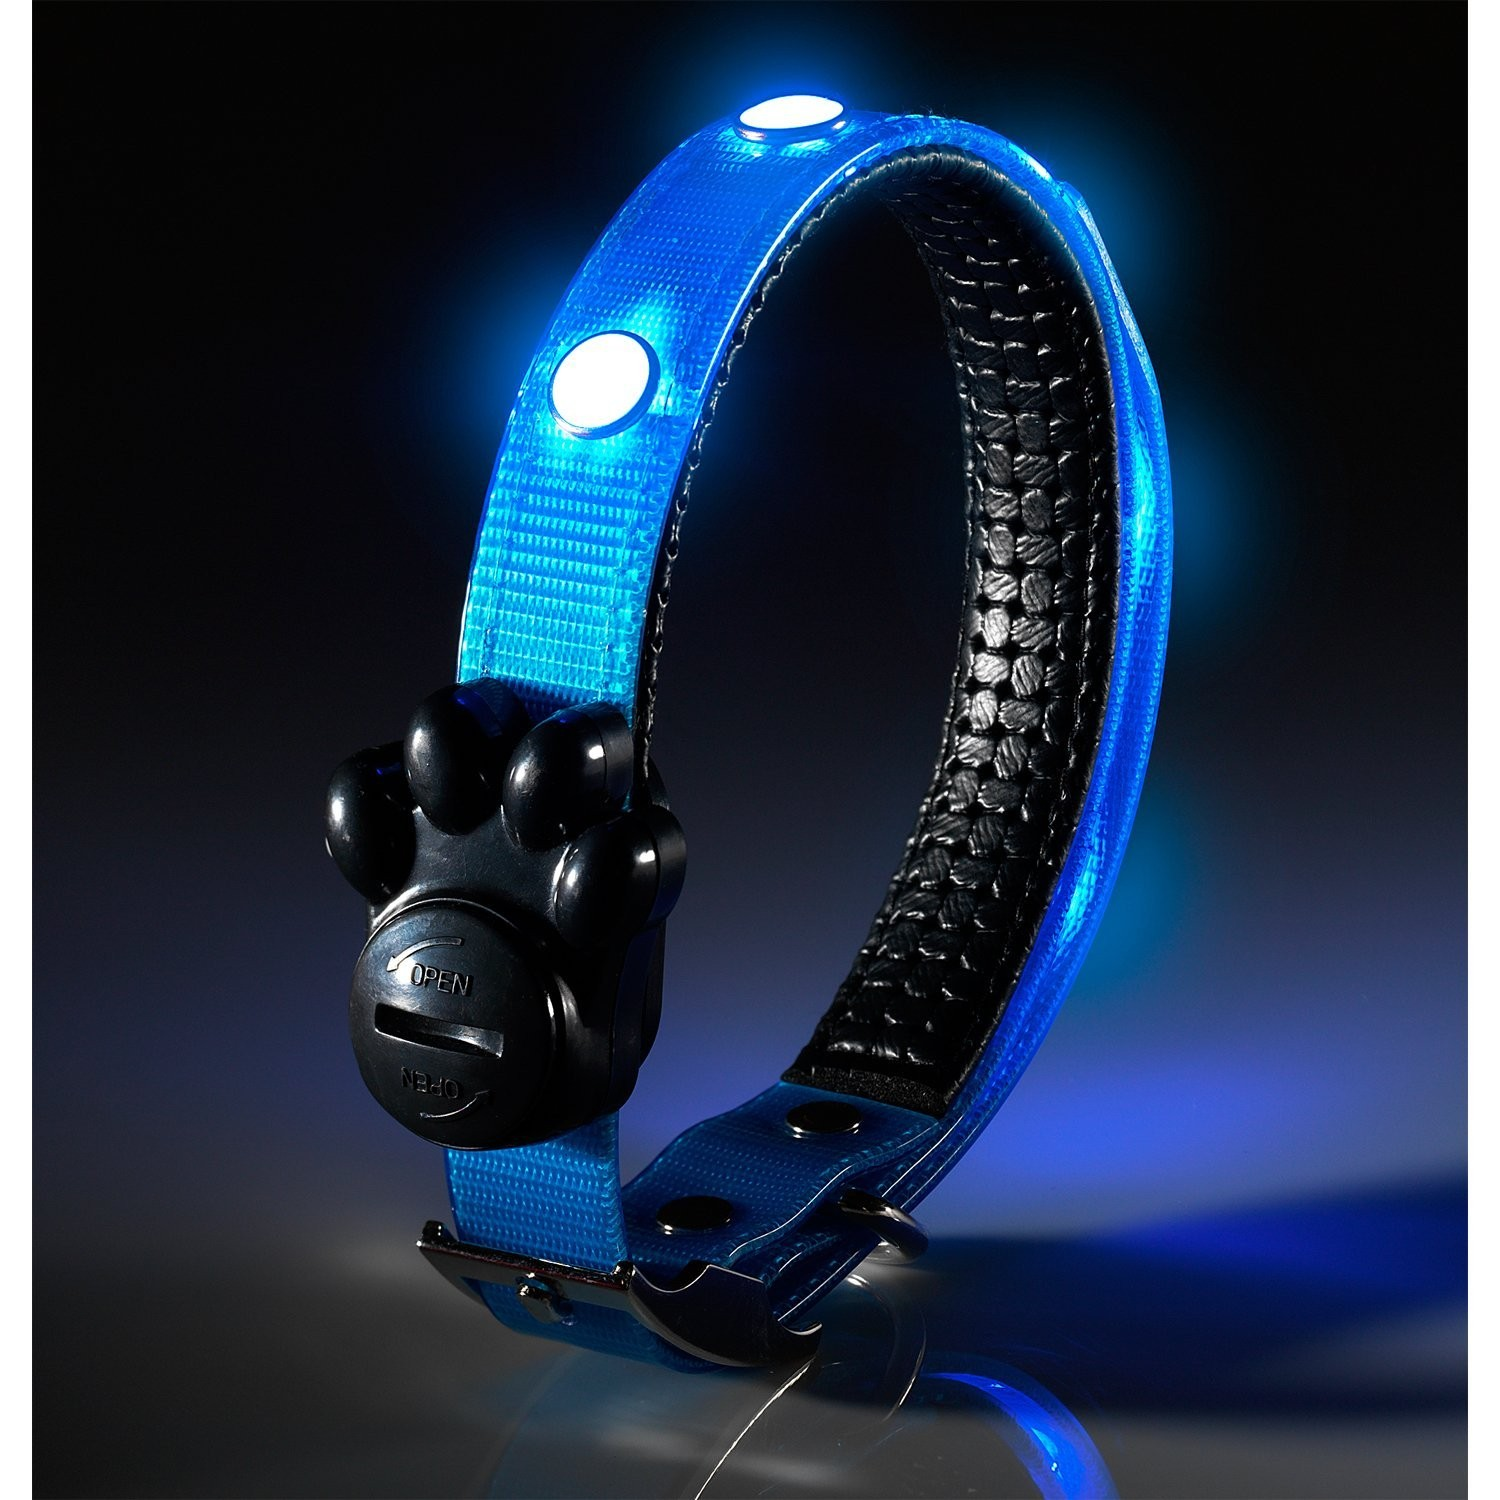 collar cat glow dog product lighting up pet light quick training flashing lights release leads detail necklace led harness safety